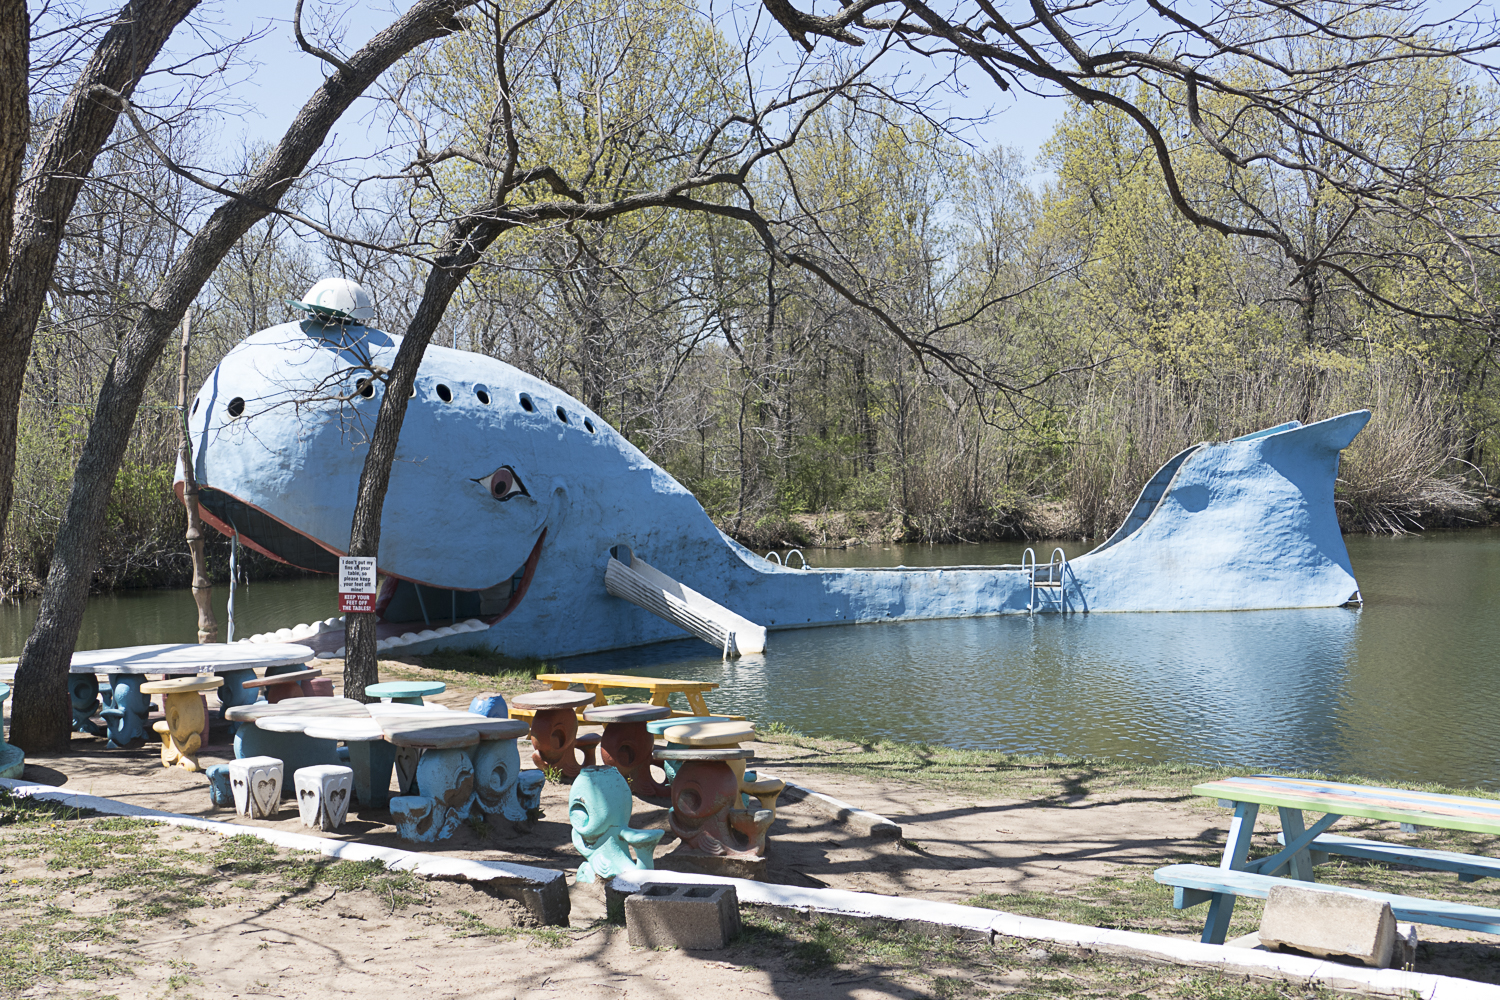 The Blue Whale near Catoosa, OK on route 66